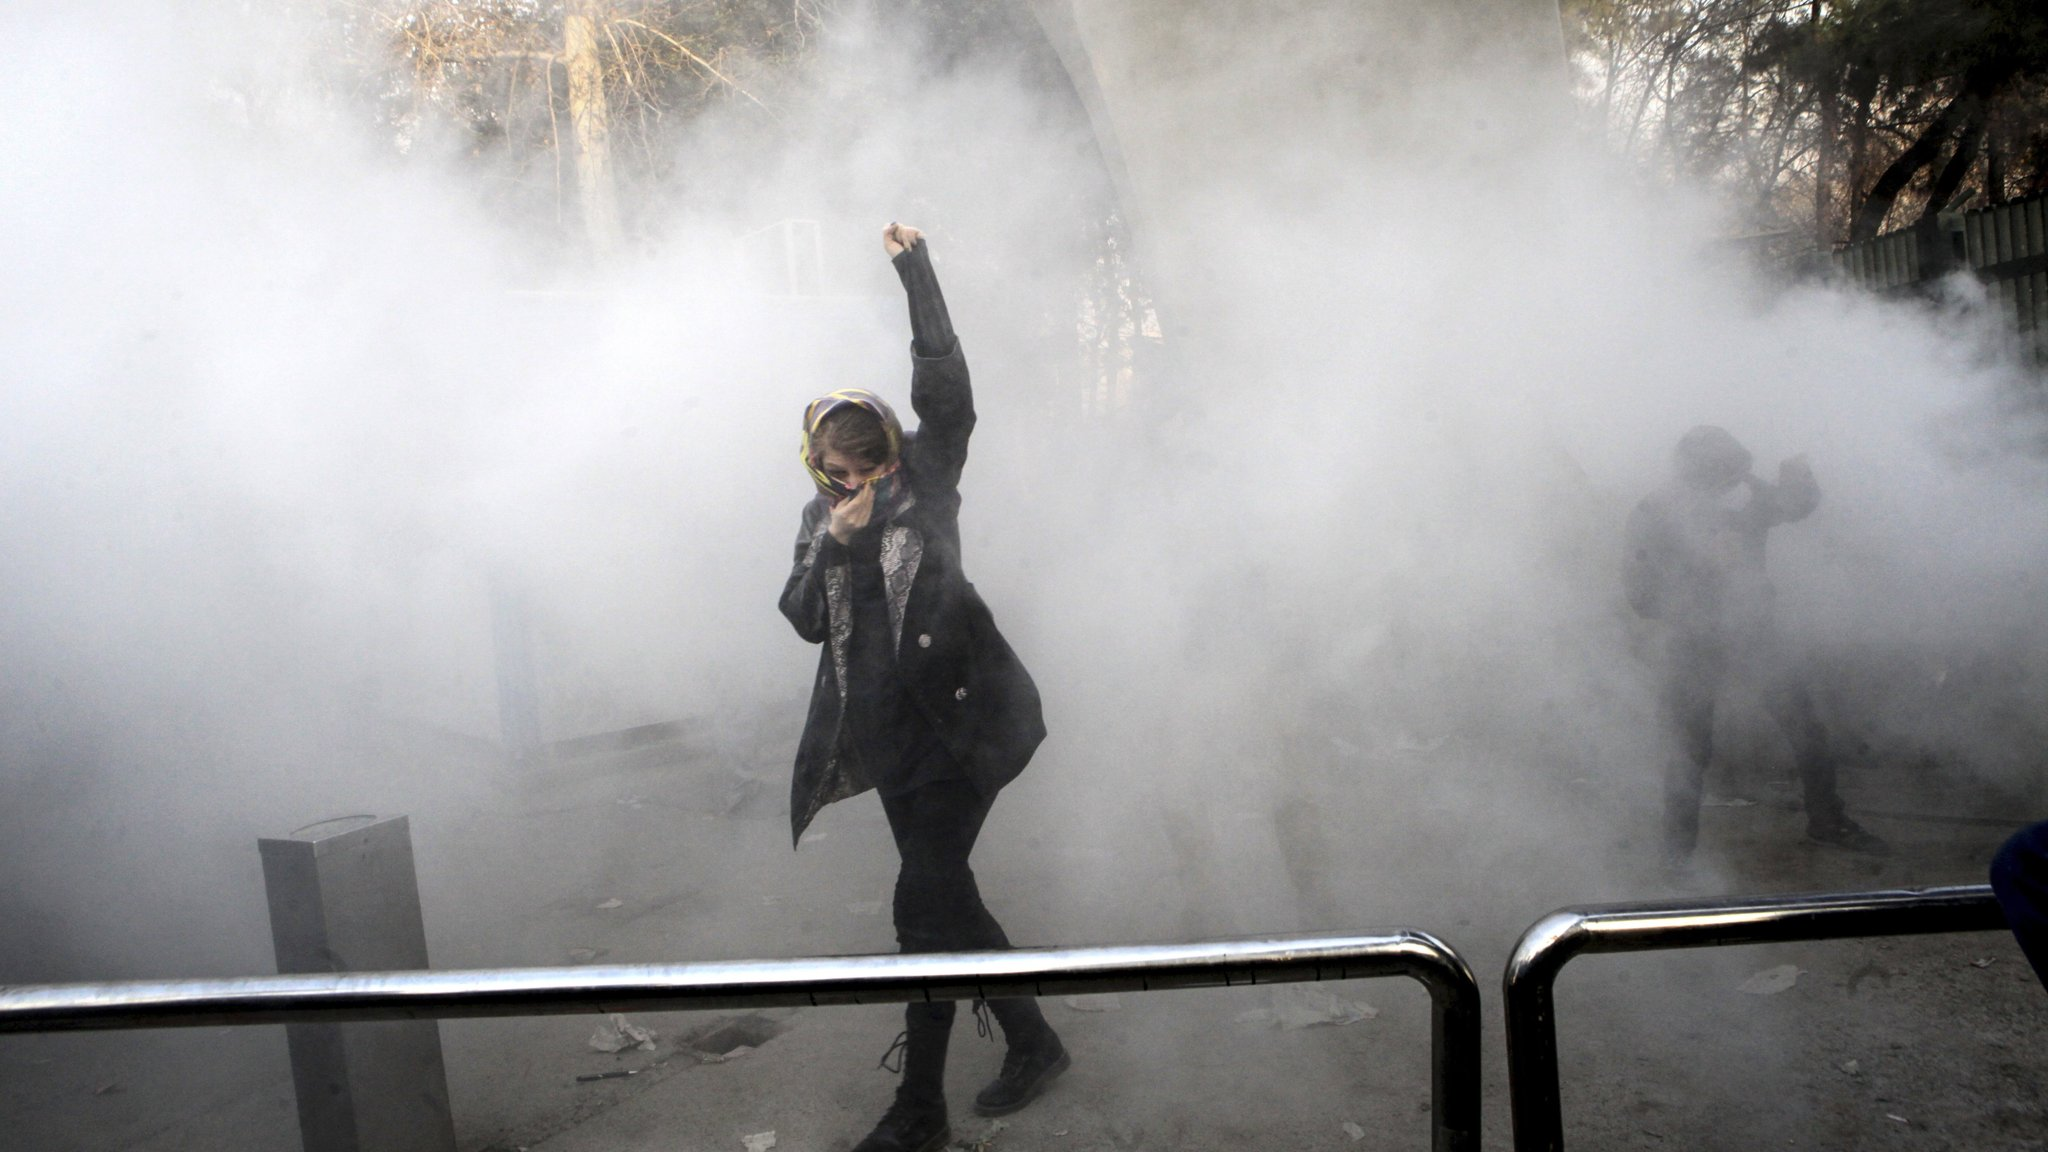 Rouhani calls for unity as death toll from Iran protests climbs